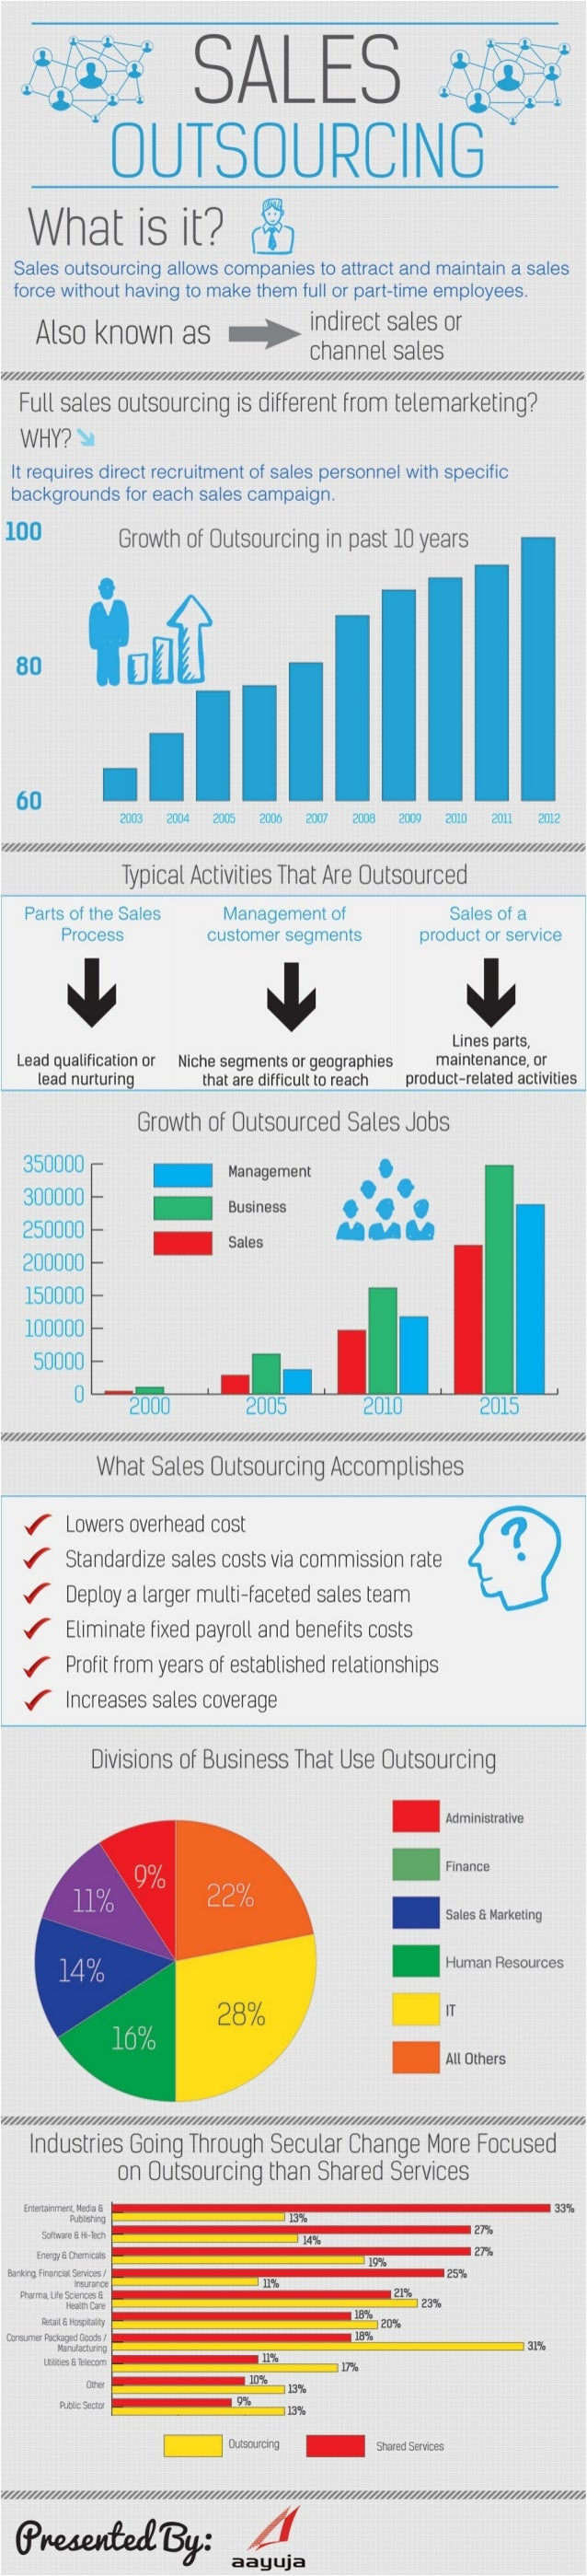 Sales Outsourcing Factsheet